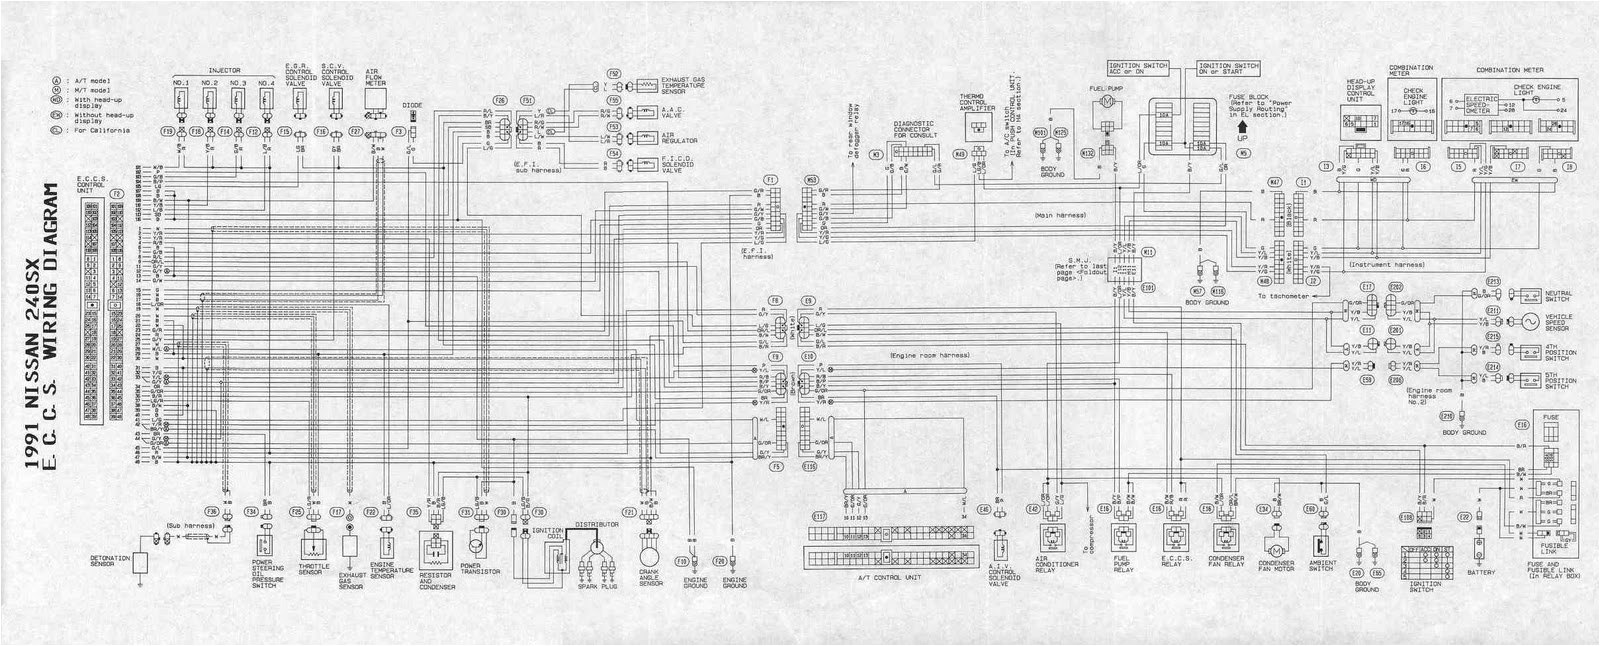 Niftylift Hr12 Wiring Diagram S13 240 Fuse Box Wiring Library